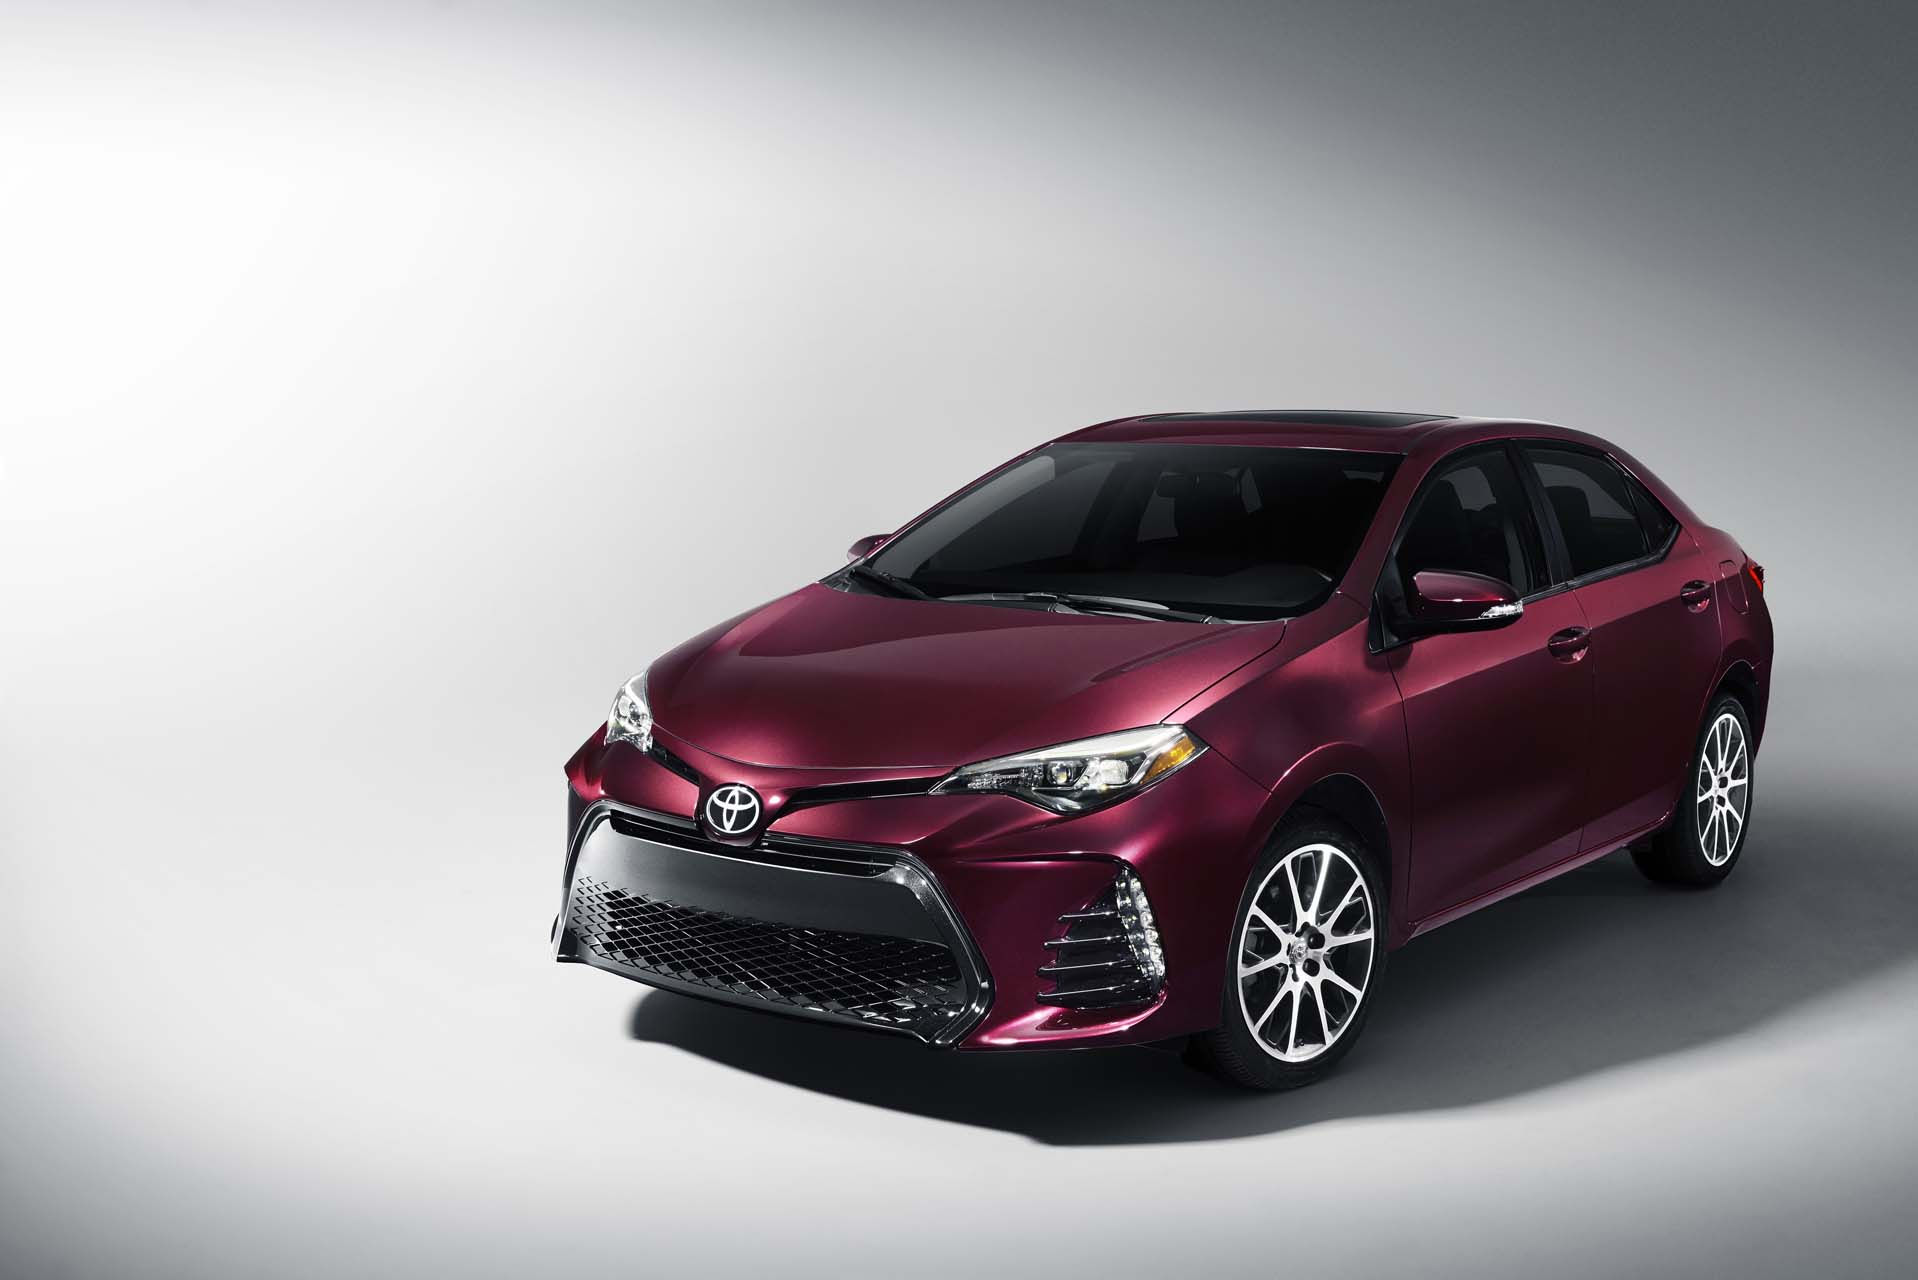 Vwvortex com 2017 toyota corolla refreshed in time for 50th anniversary